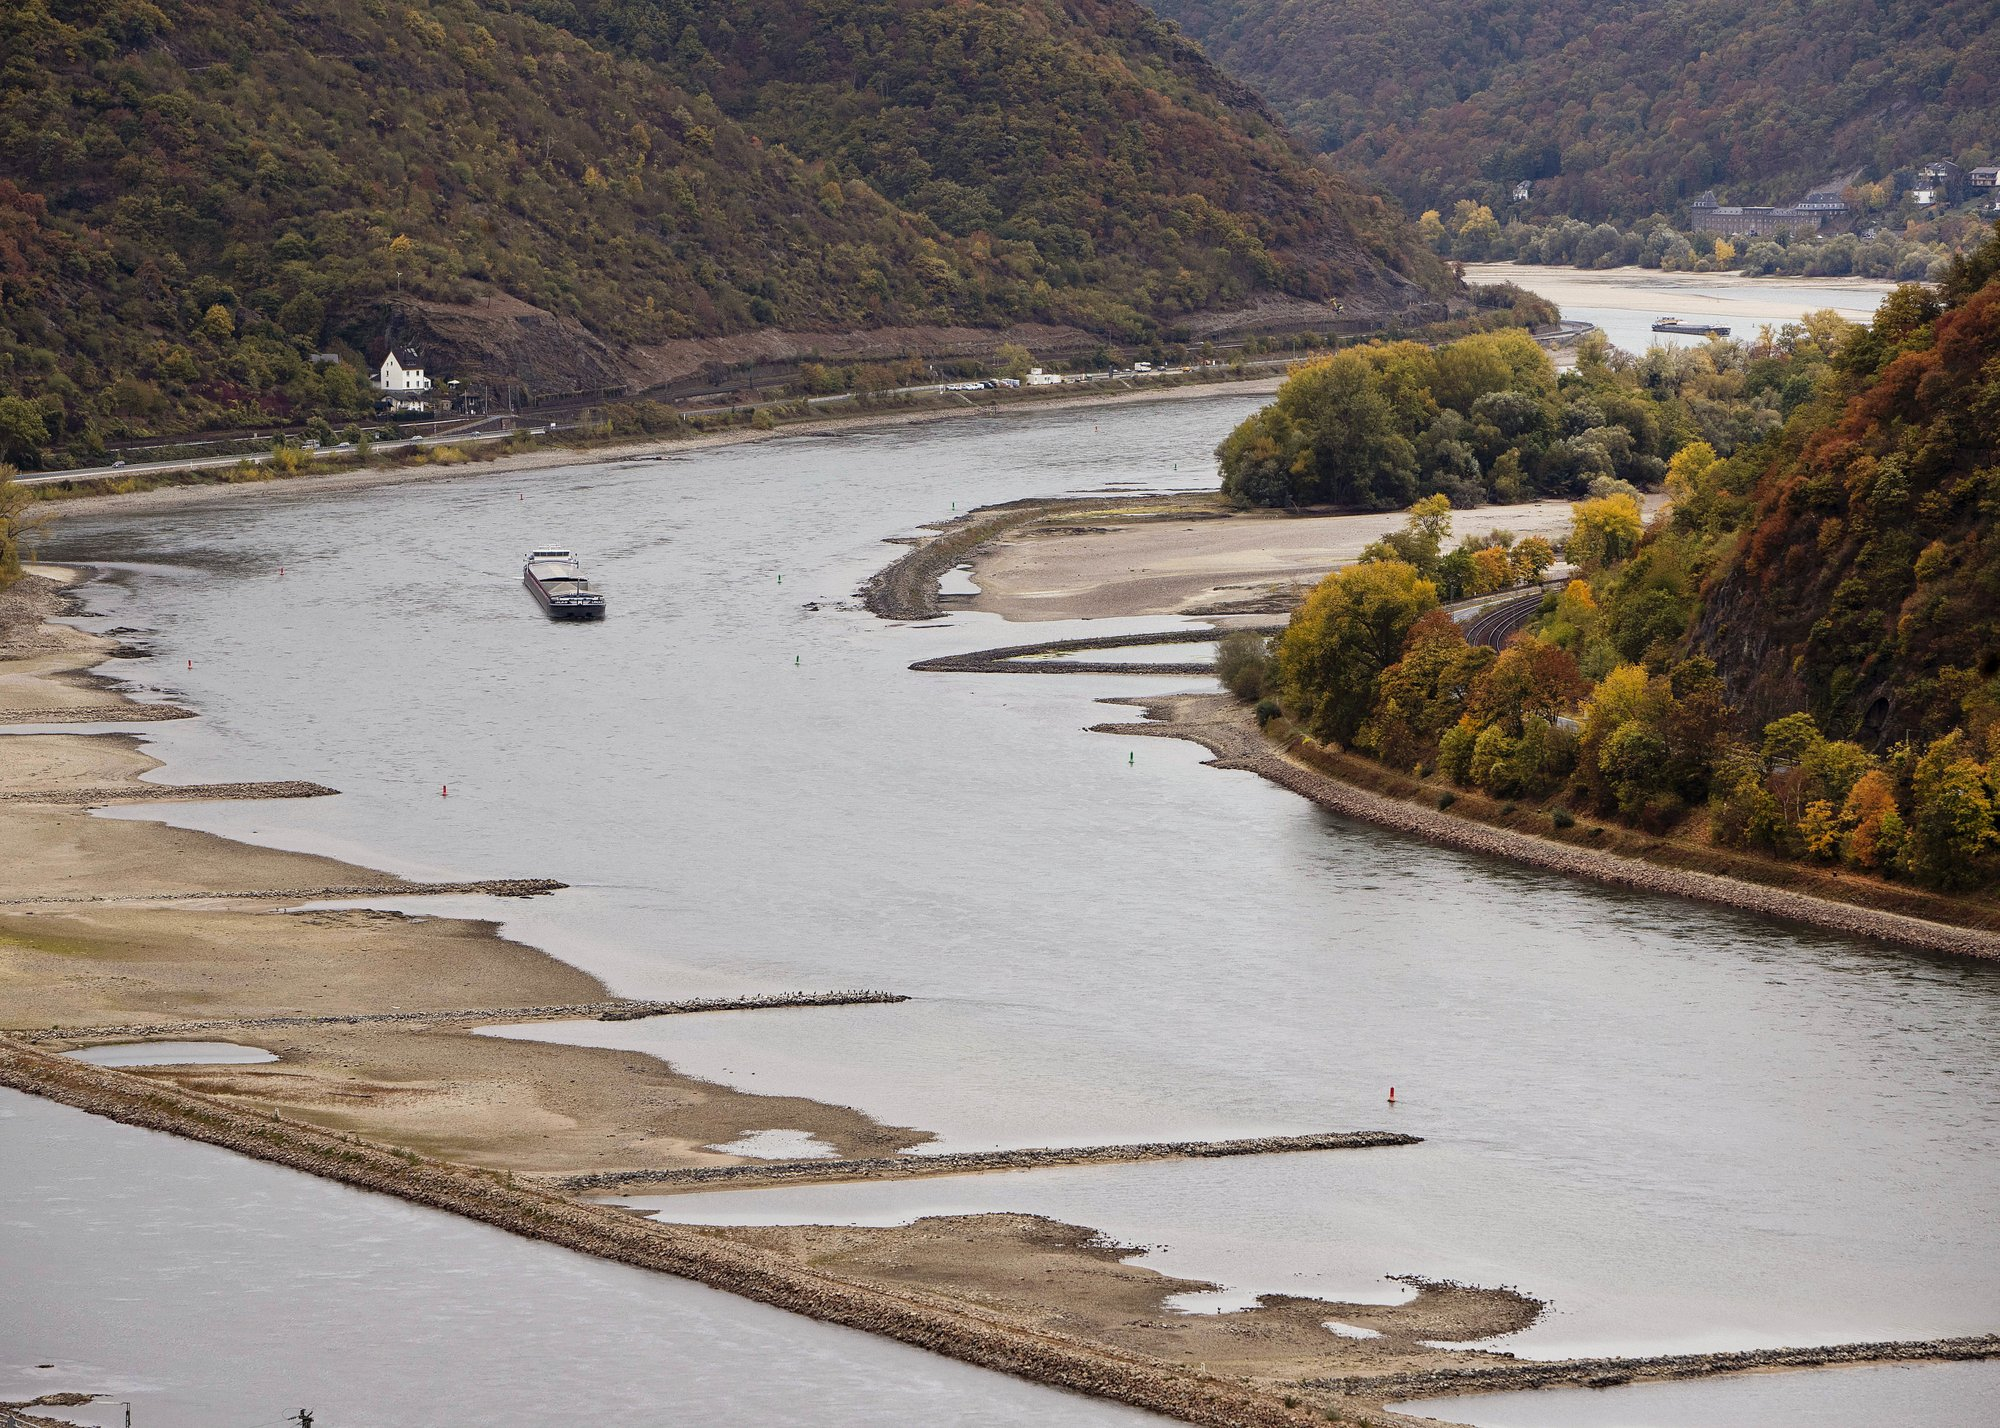 Record low Rhine water levels continue to impact commodities